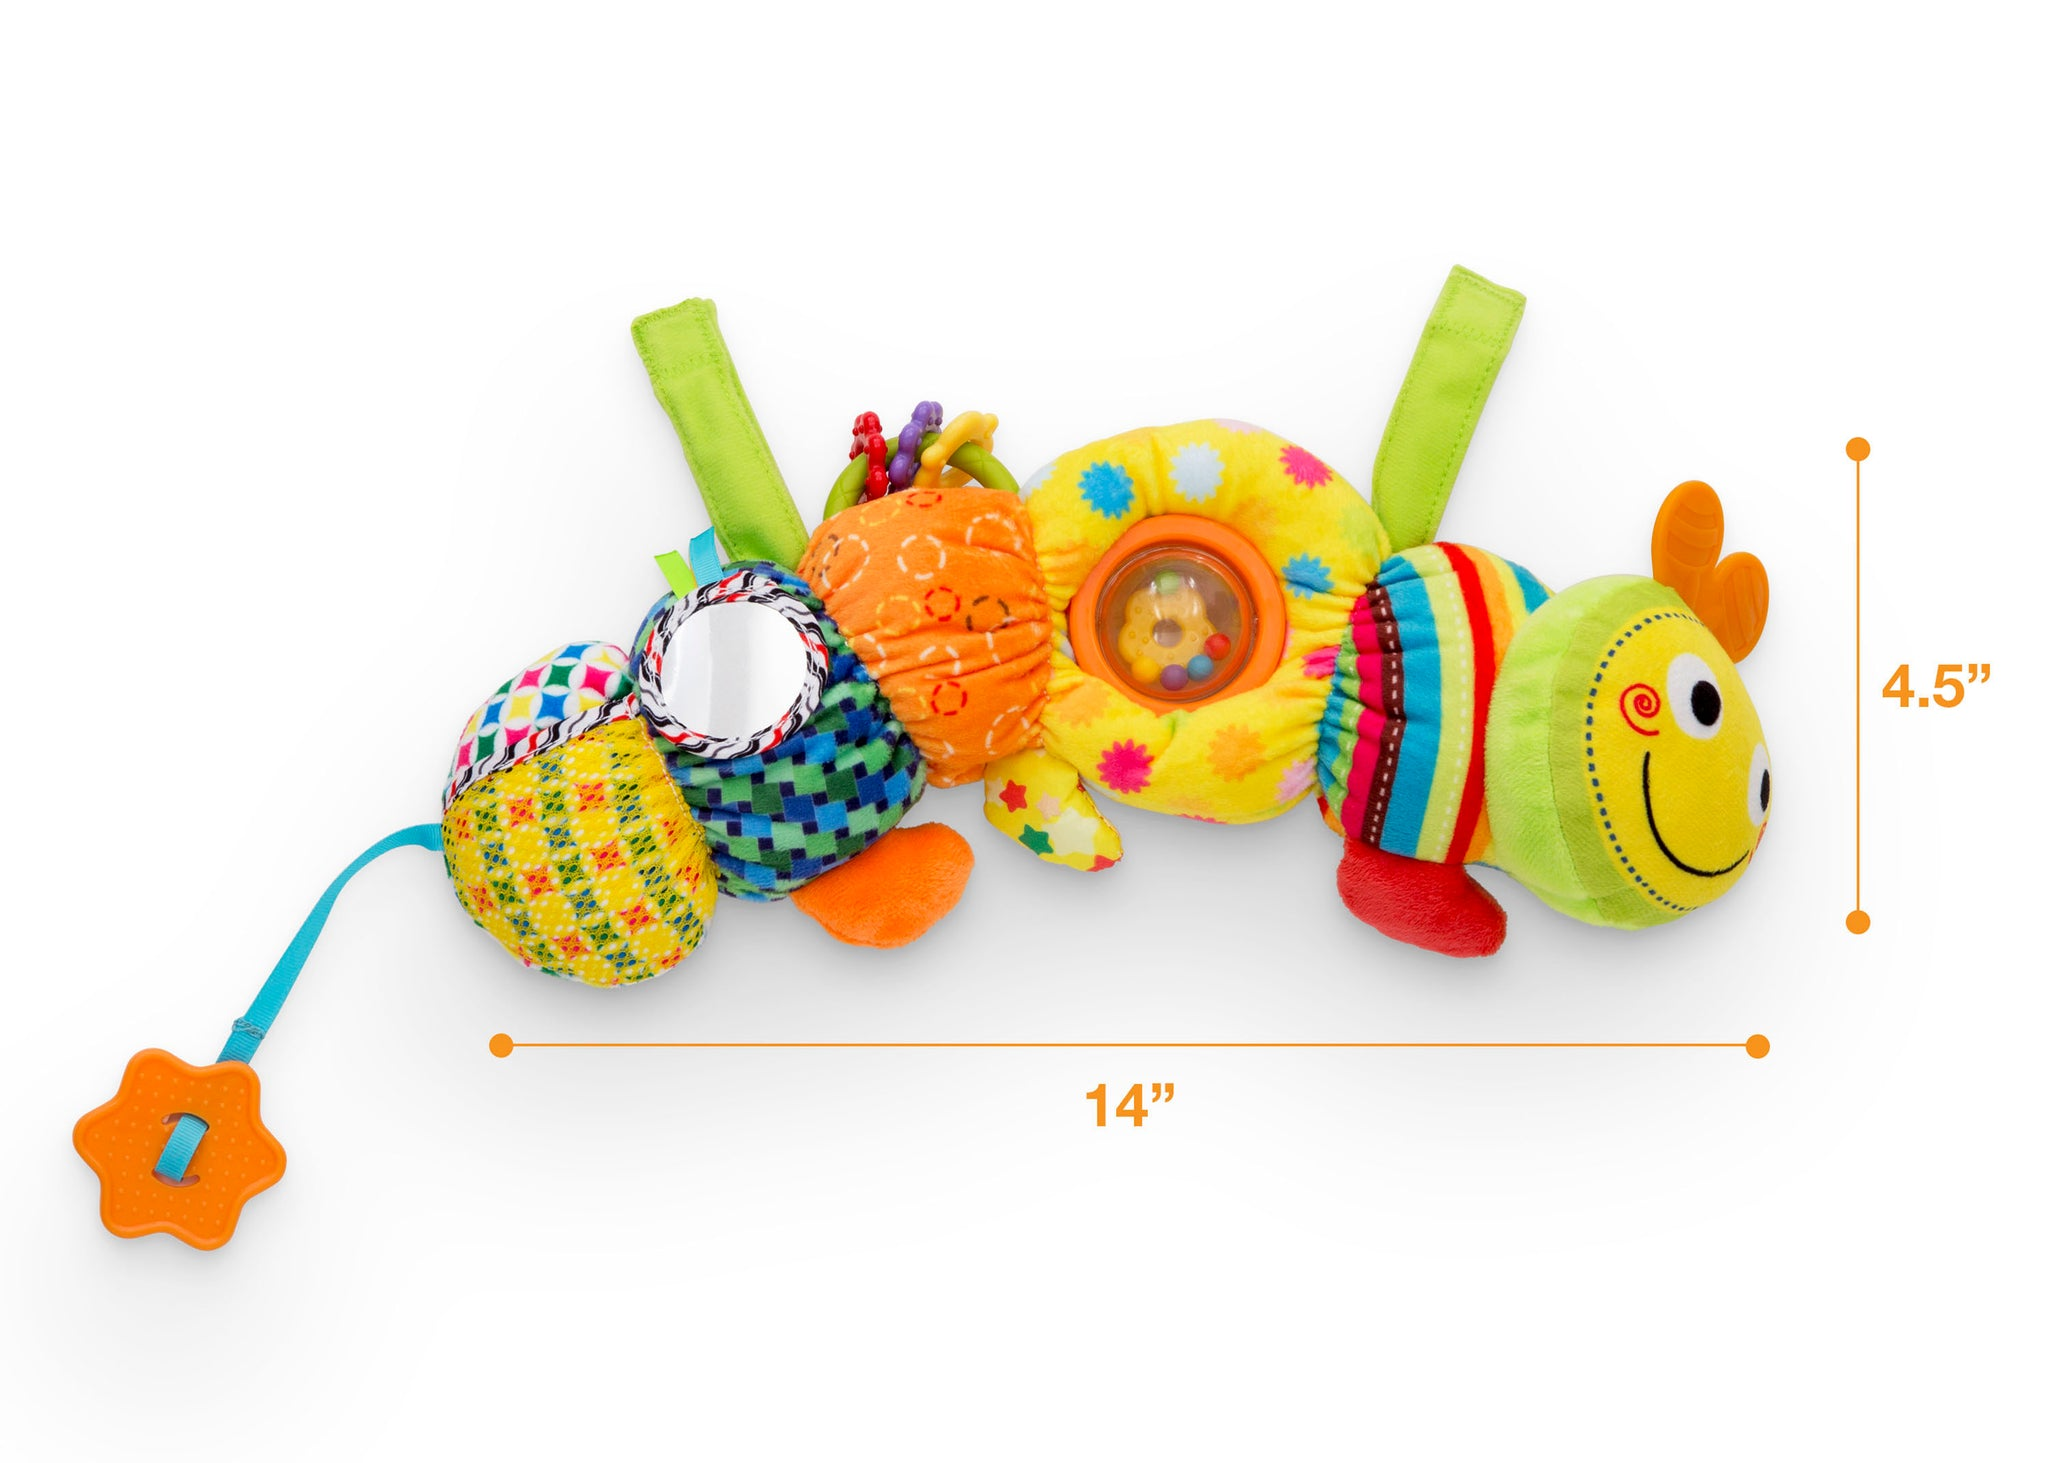 Delta Children Stroller/Car Seat Activity and Teething Toy for Babies, 1-Piece Set, Caterpillar (999), Measured View